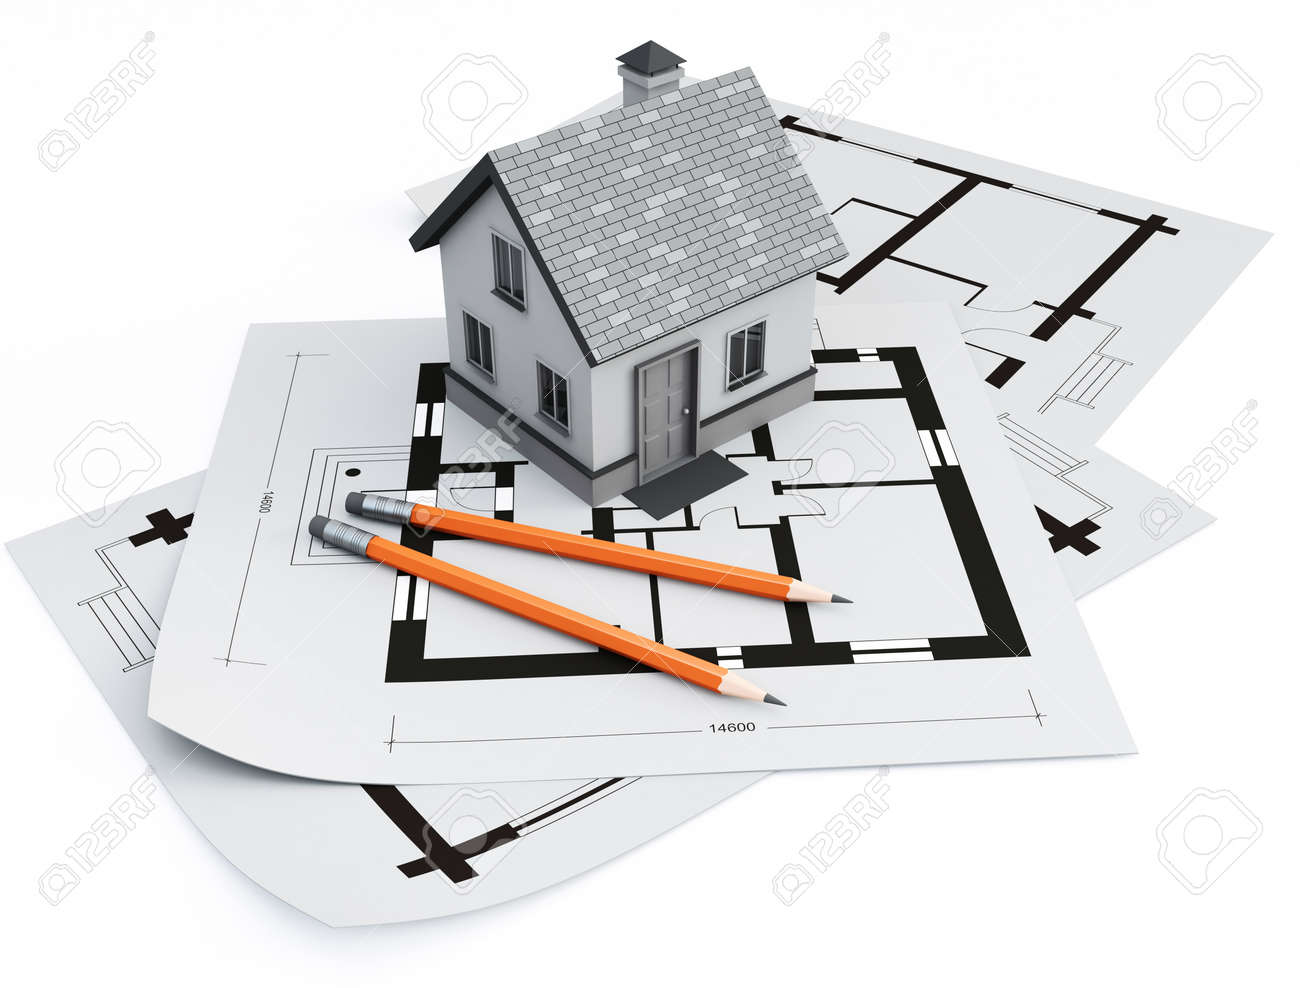 house on architecture blueprints Stock Photo - 9685637